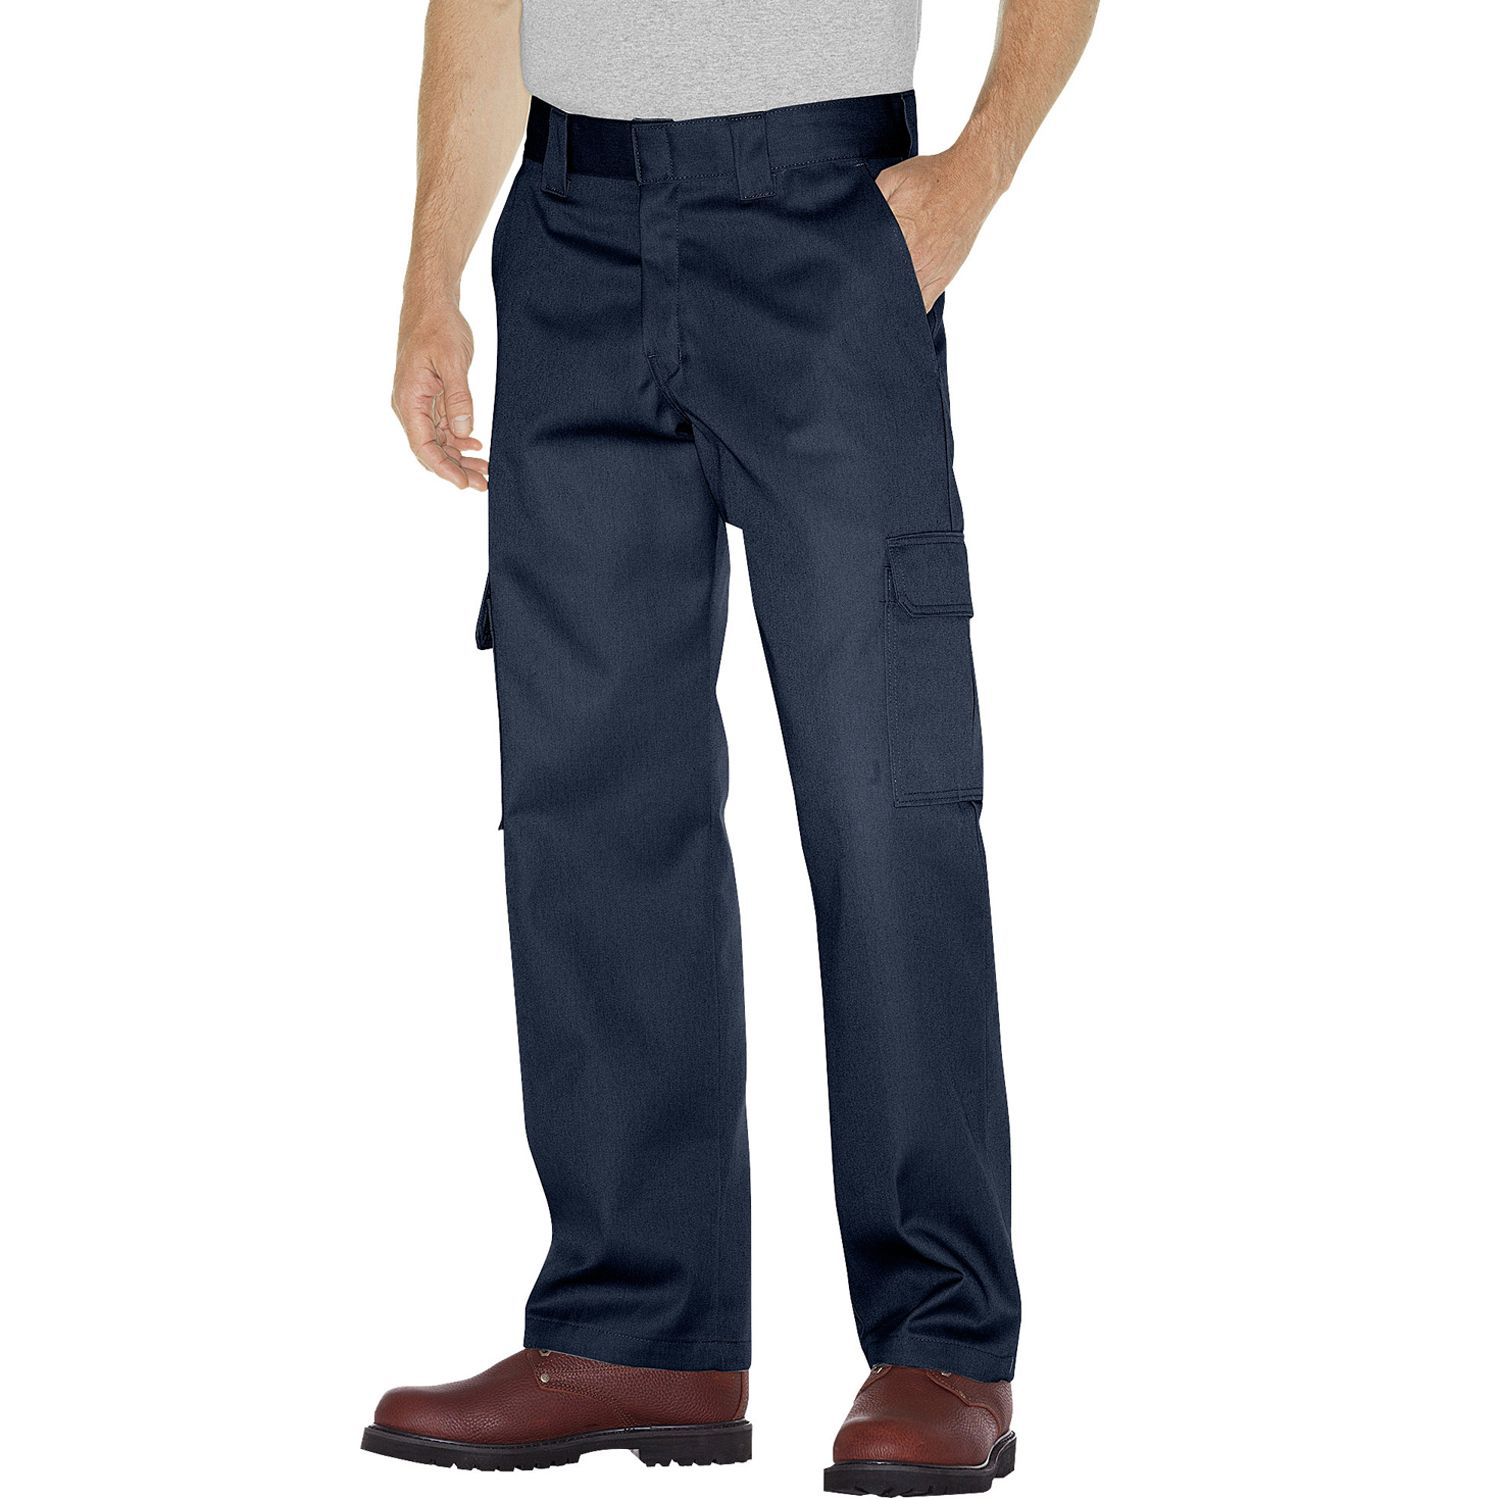 Mens Blue Cargo Pants SjfdffjN